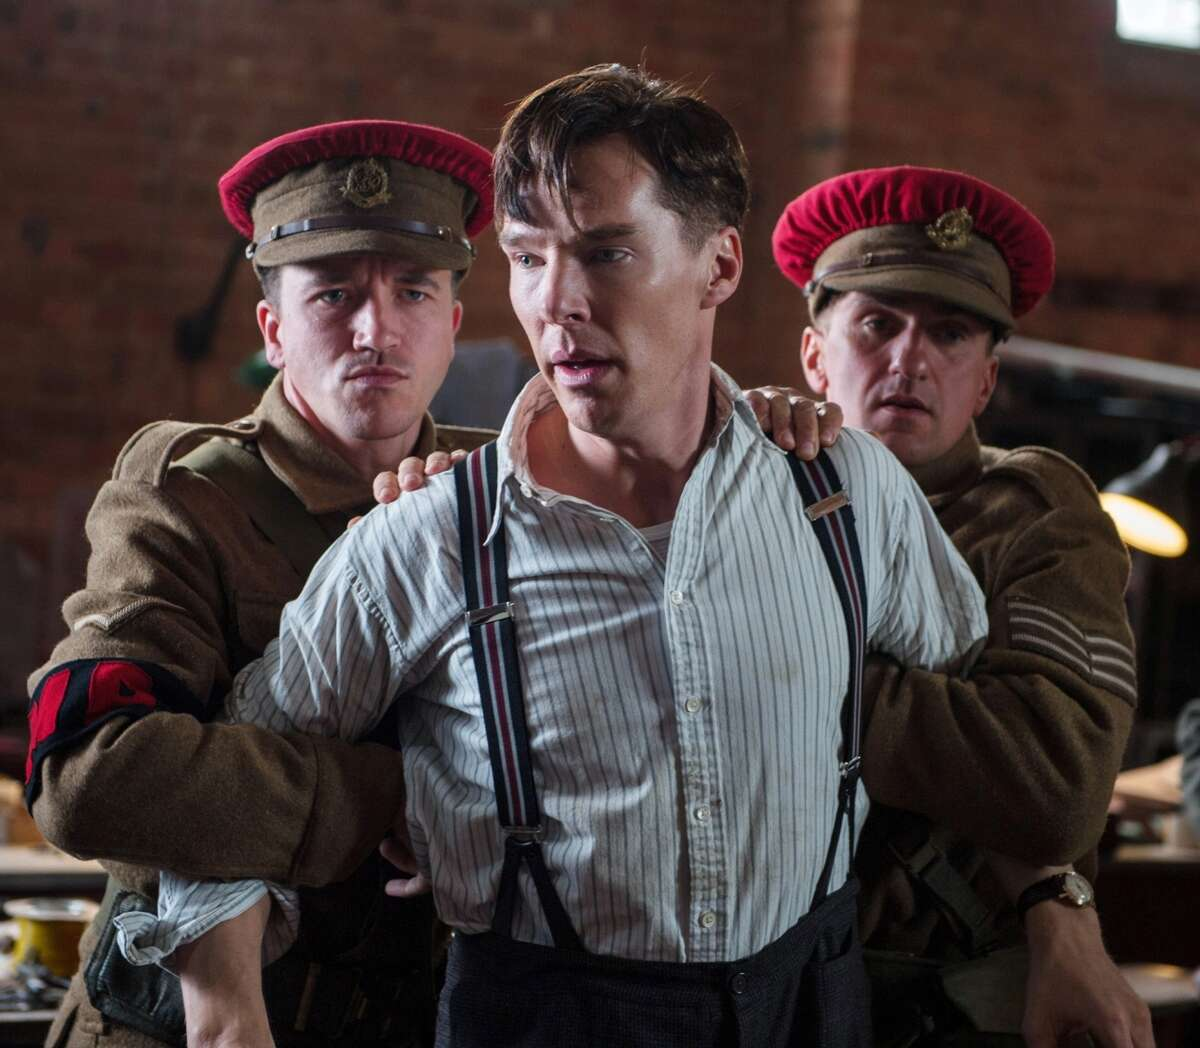 Benedict Cumberbatch stars as British mathematician Alan Turing in